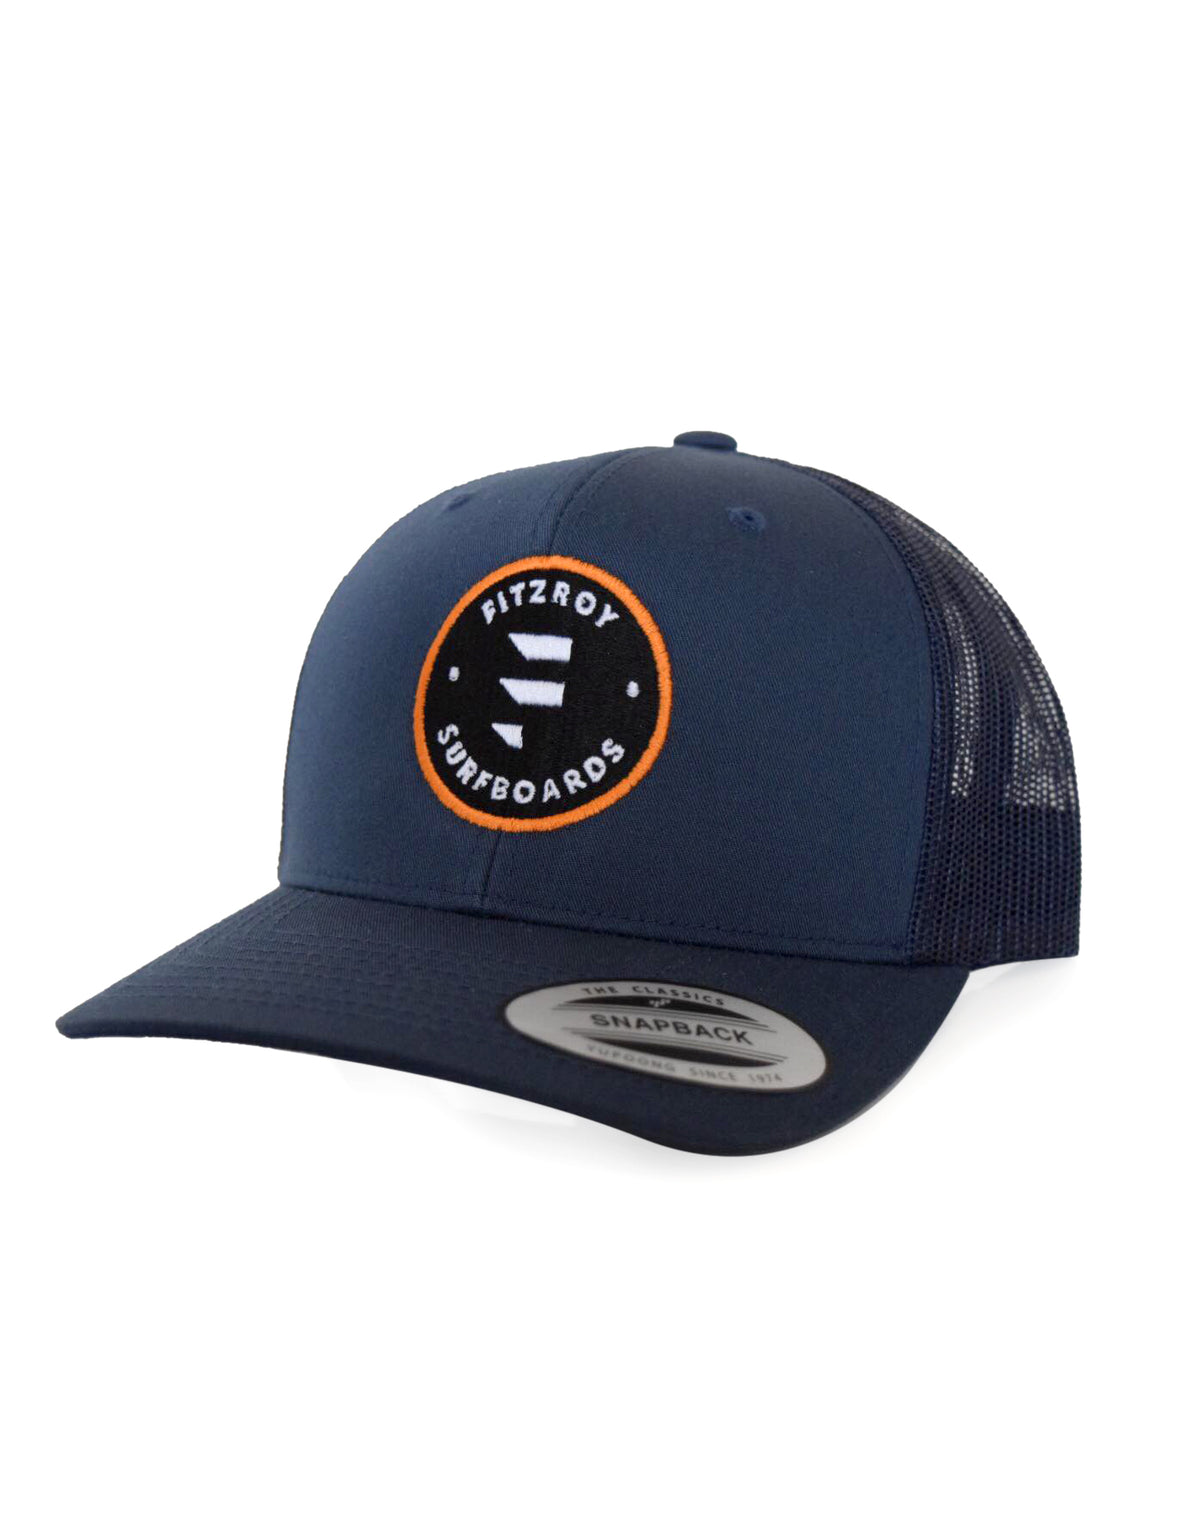 Fitzroy Surfboards Trucker Cap